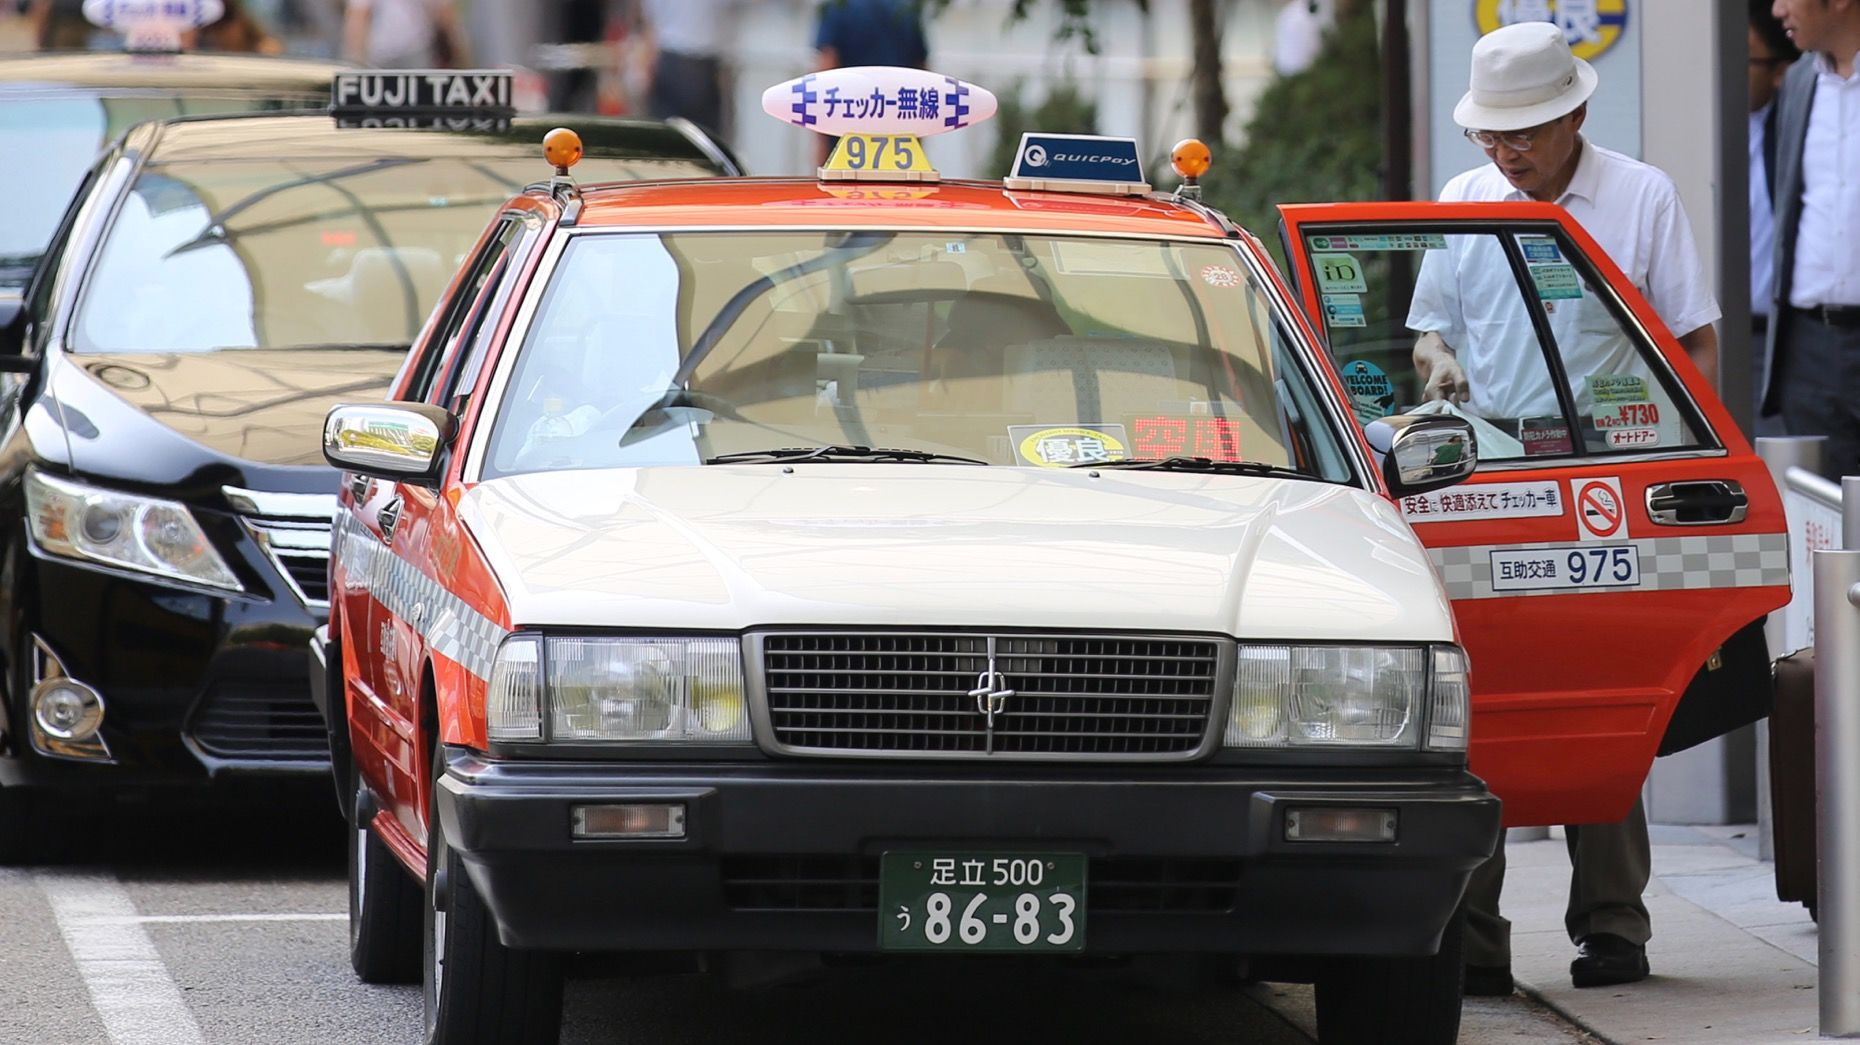 Taxis at a taxi stand outside a train station in Tokyo. Photo: Bloomberg